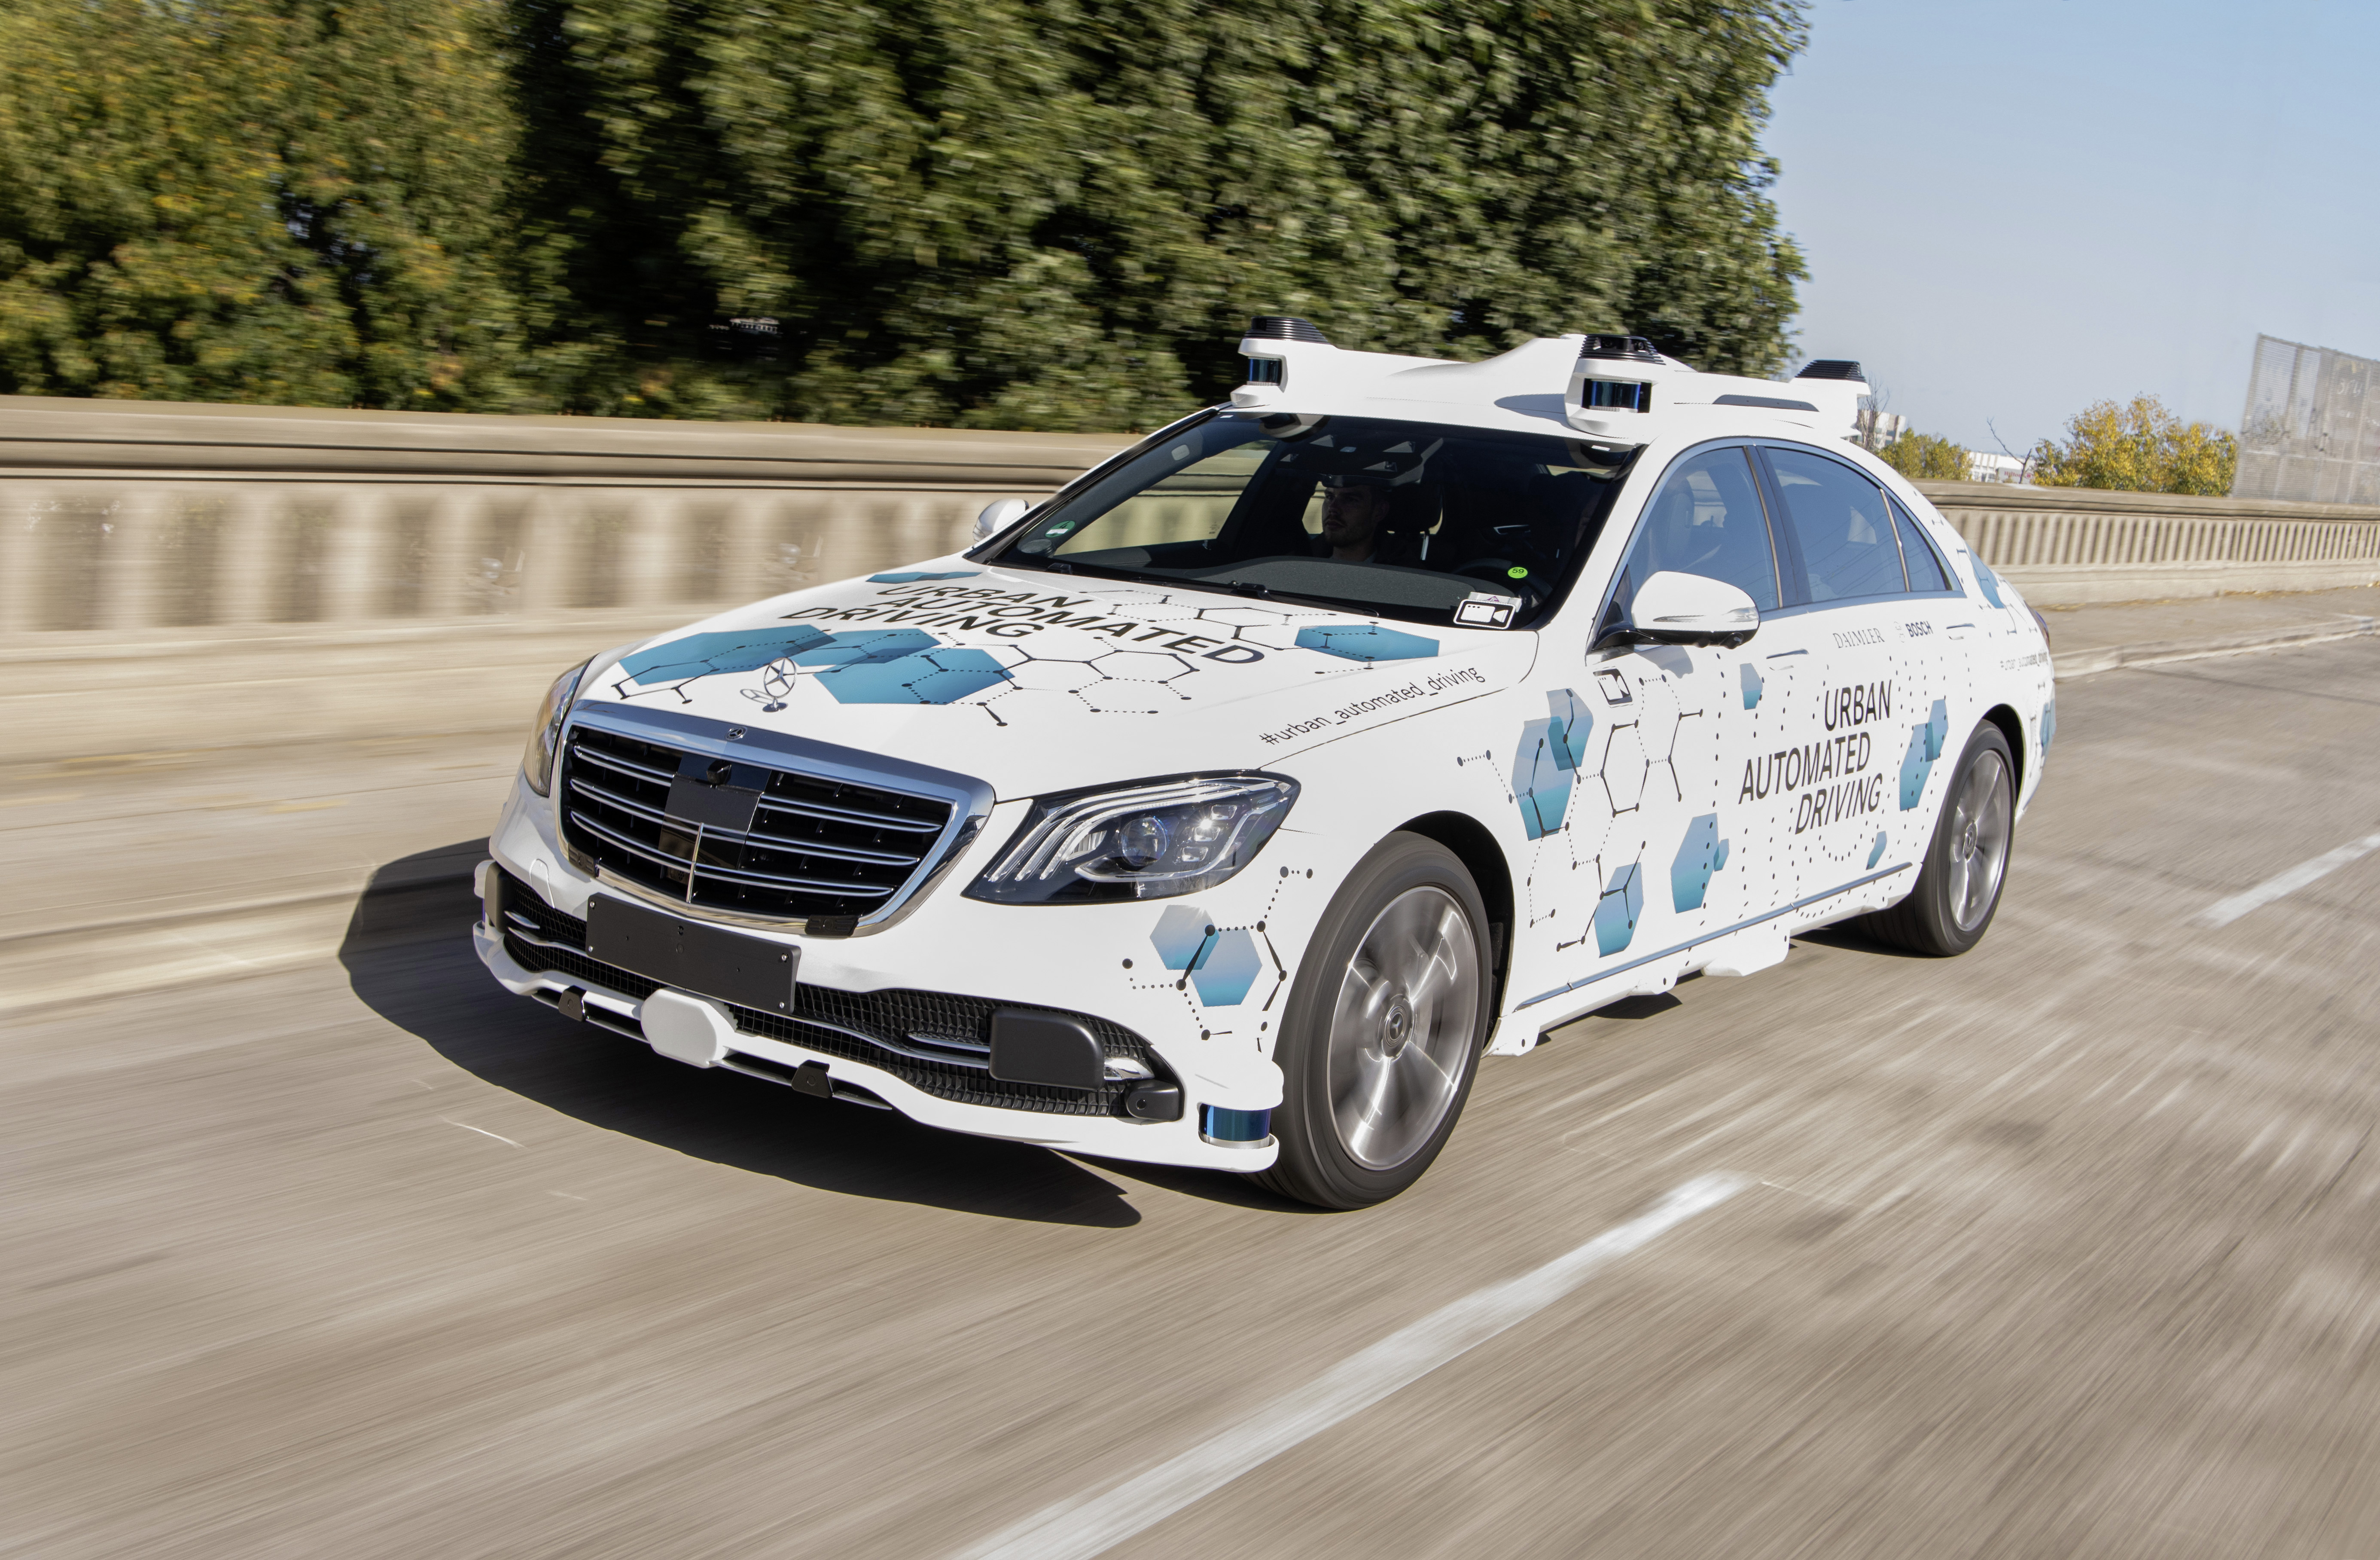 Automated driving in city traffic